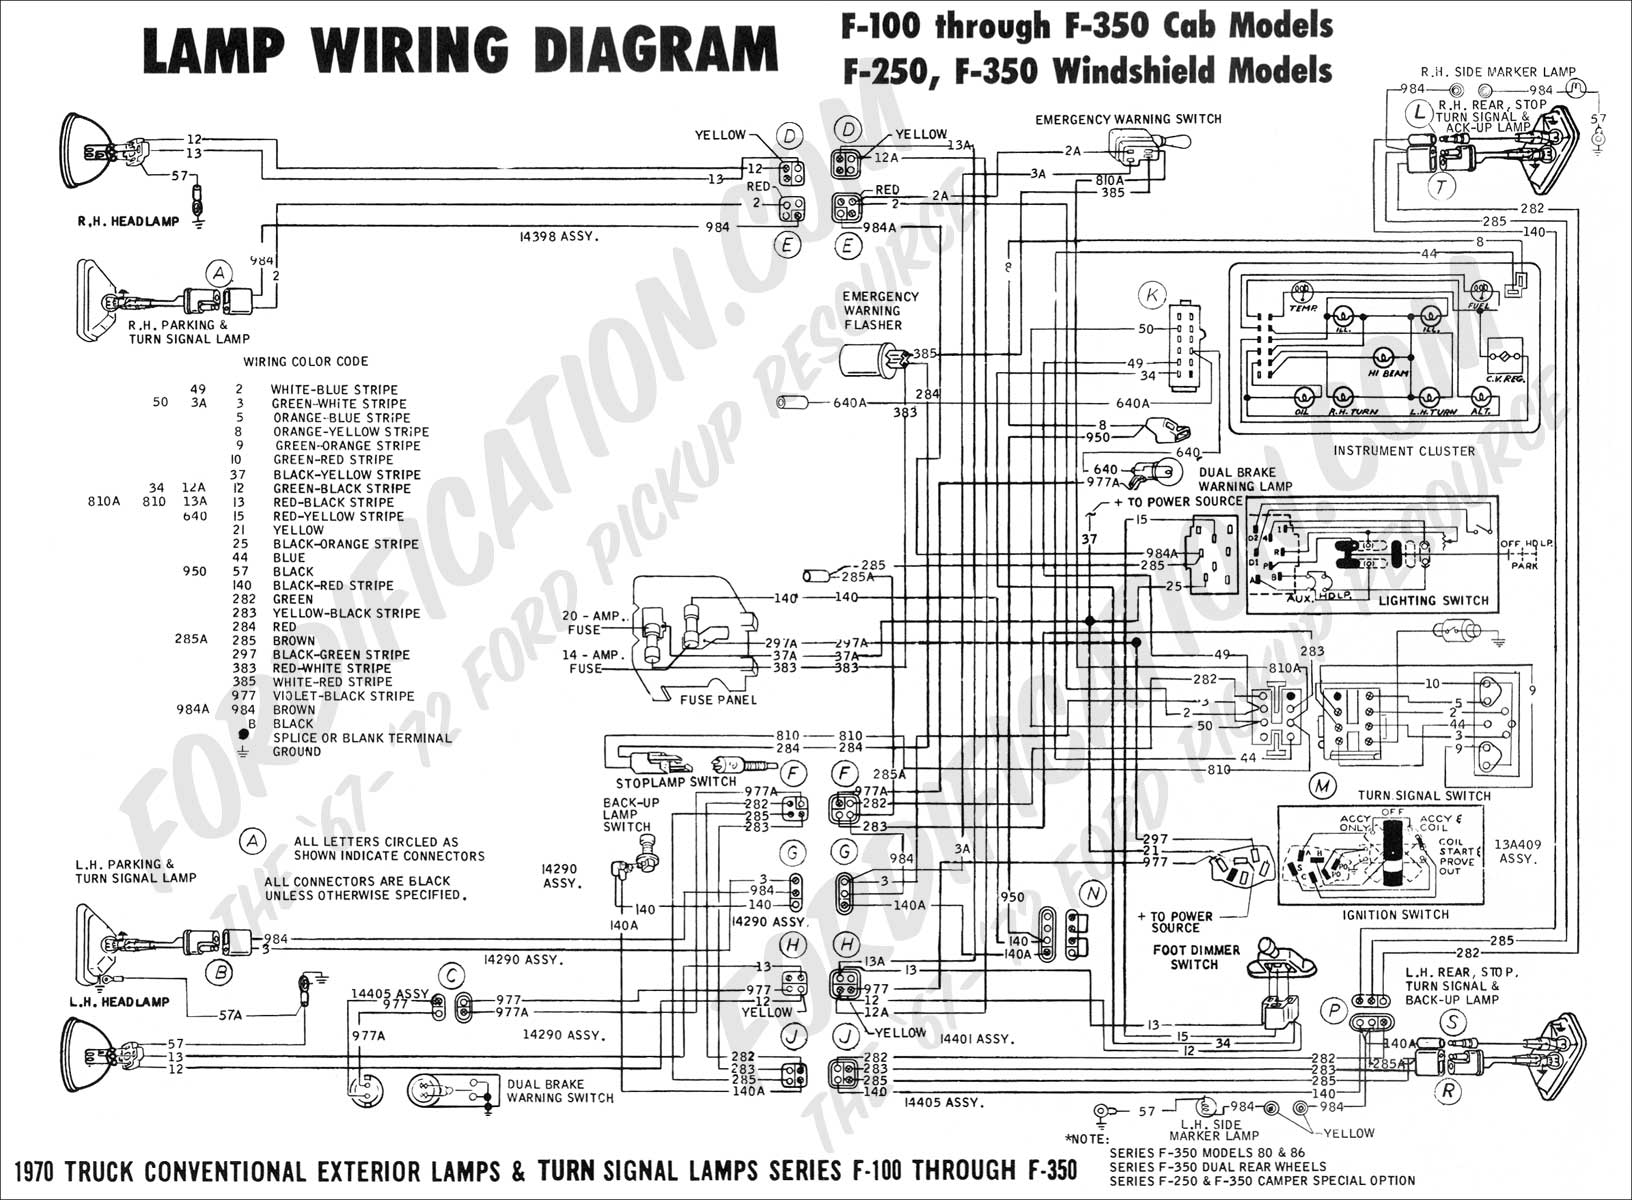 wiring diagram_70ext lights01 ford truck technical drawings and schematics section h wiring  at eliteediting.co